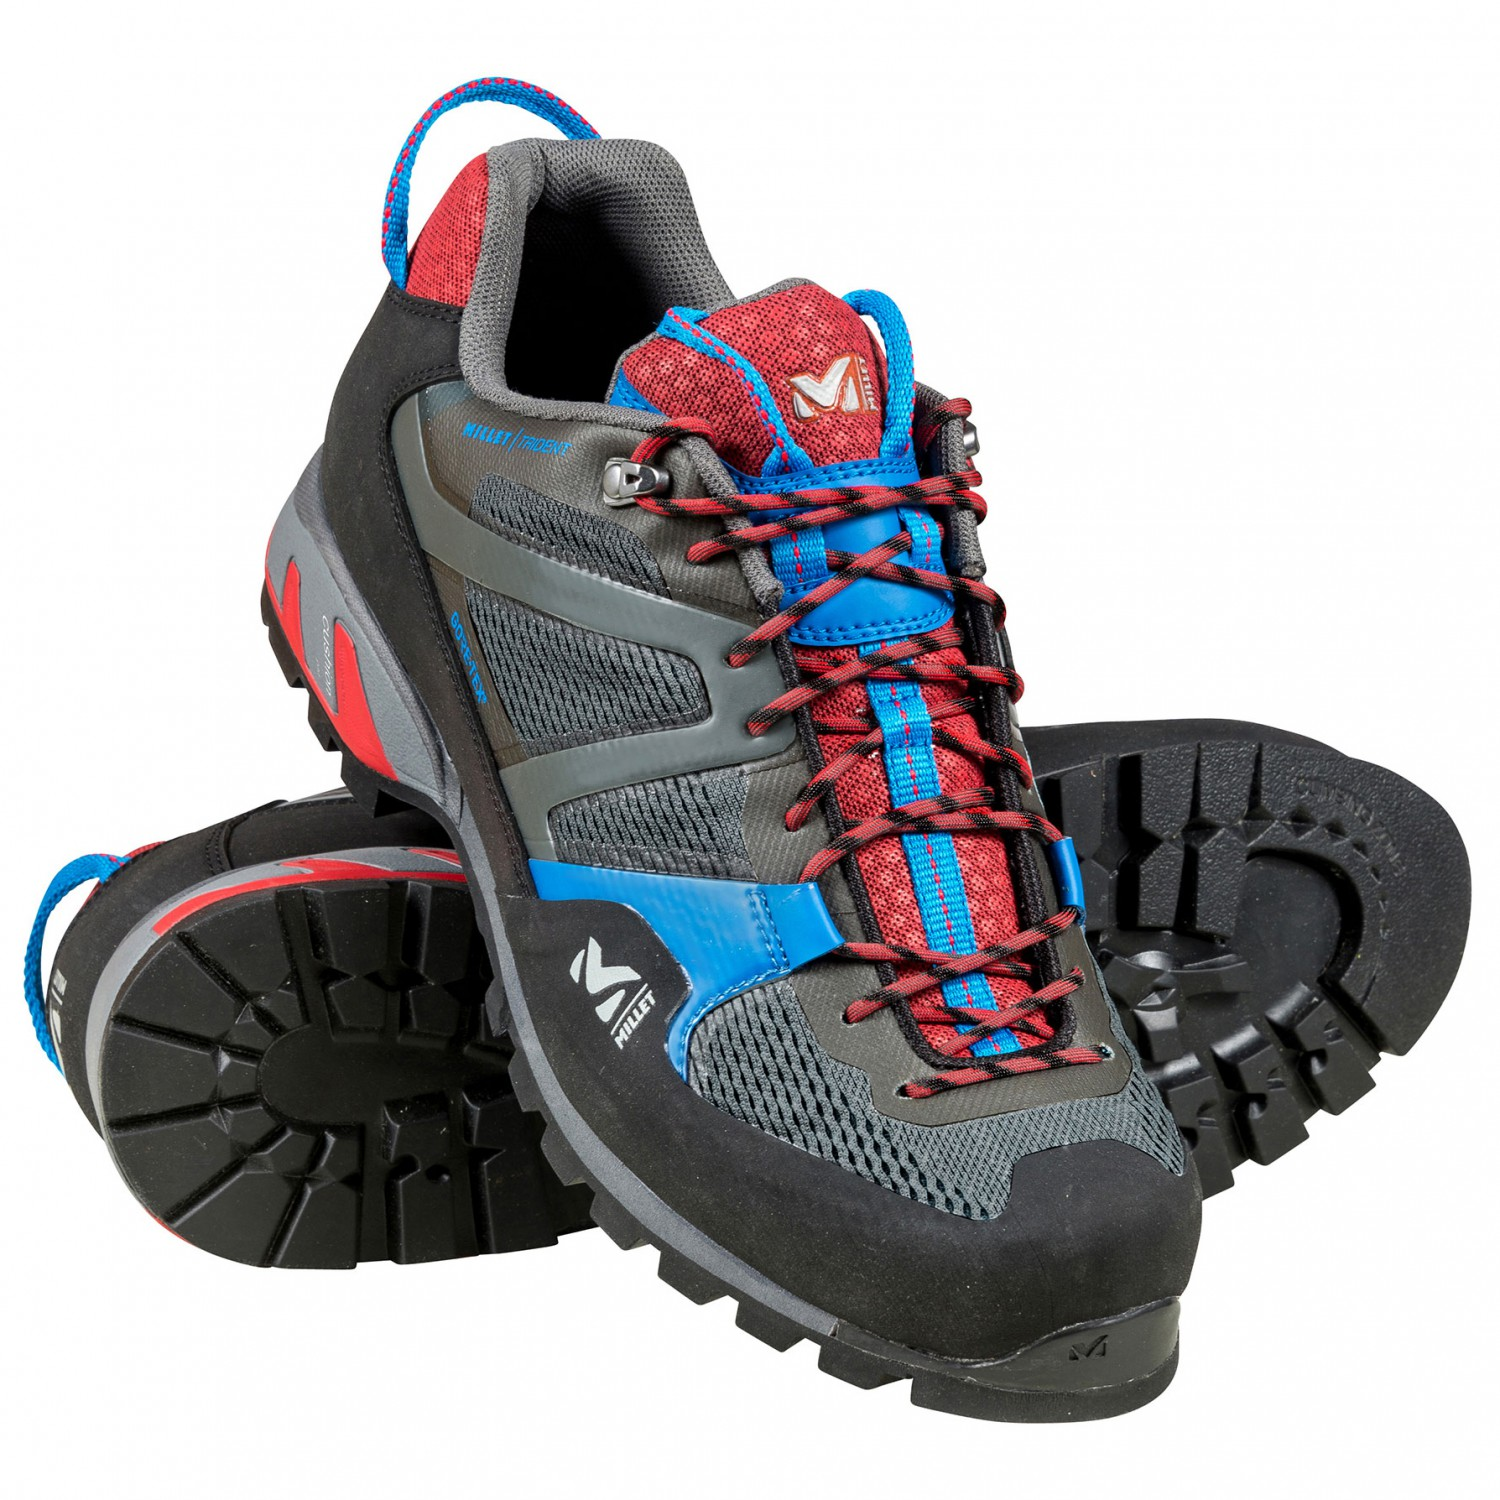 afb90a020fb Millet - Trident GTX - Approach shoes - Grey / Red | 8,5 (UK)